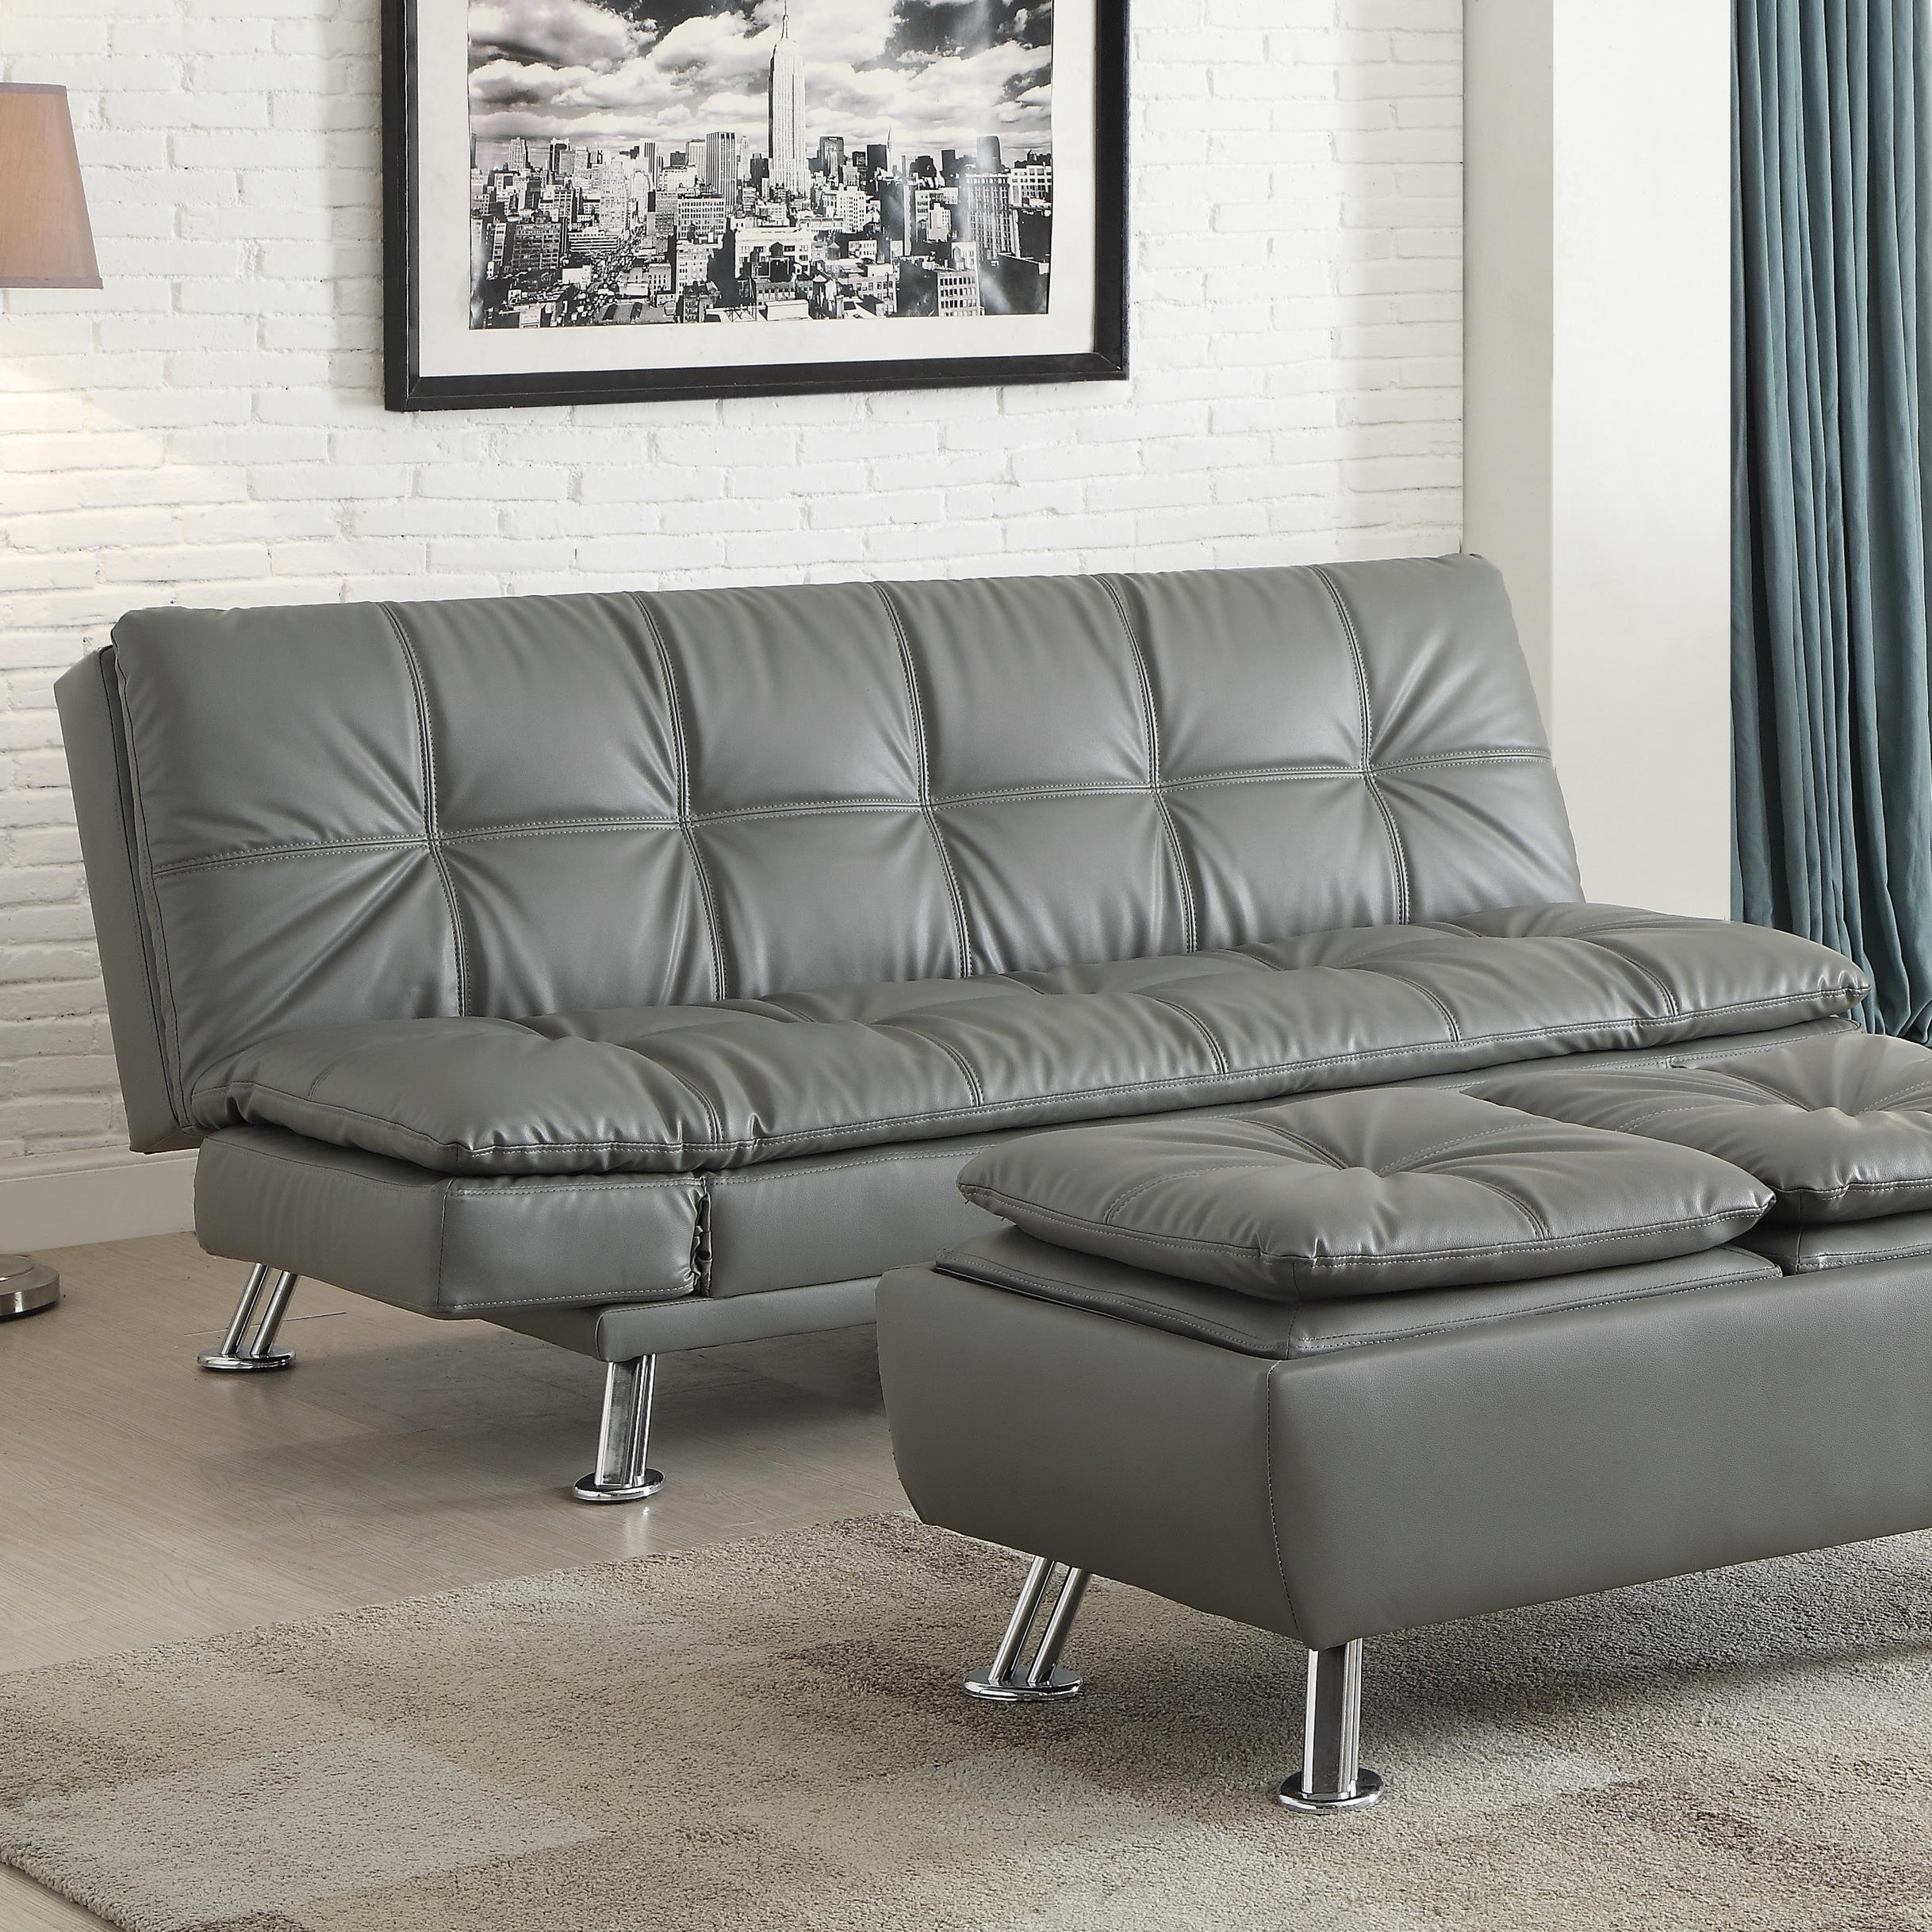 Coaster Dilleston Sofa Bed in Futon Style - Item Number: 500096